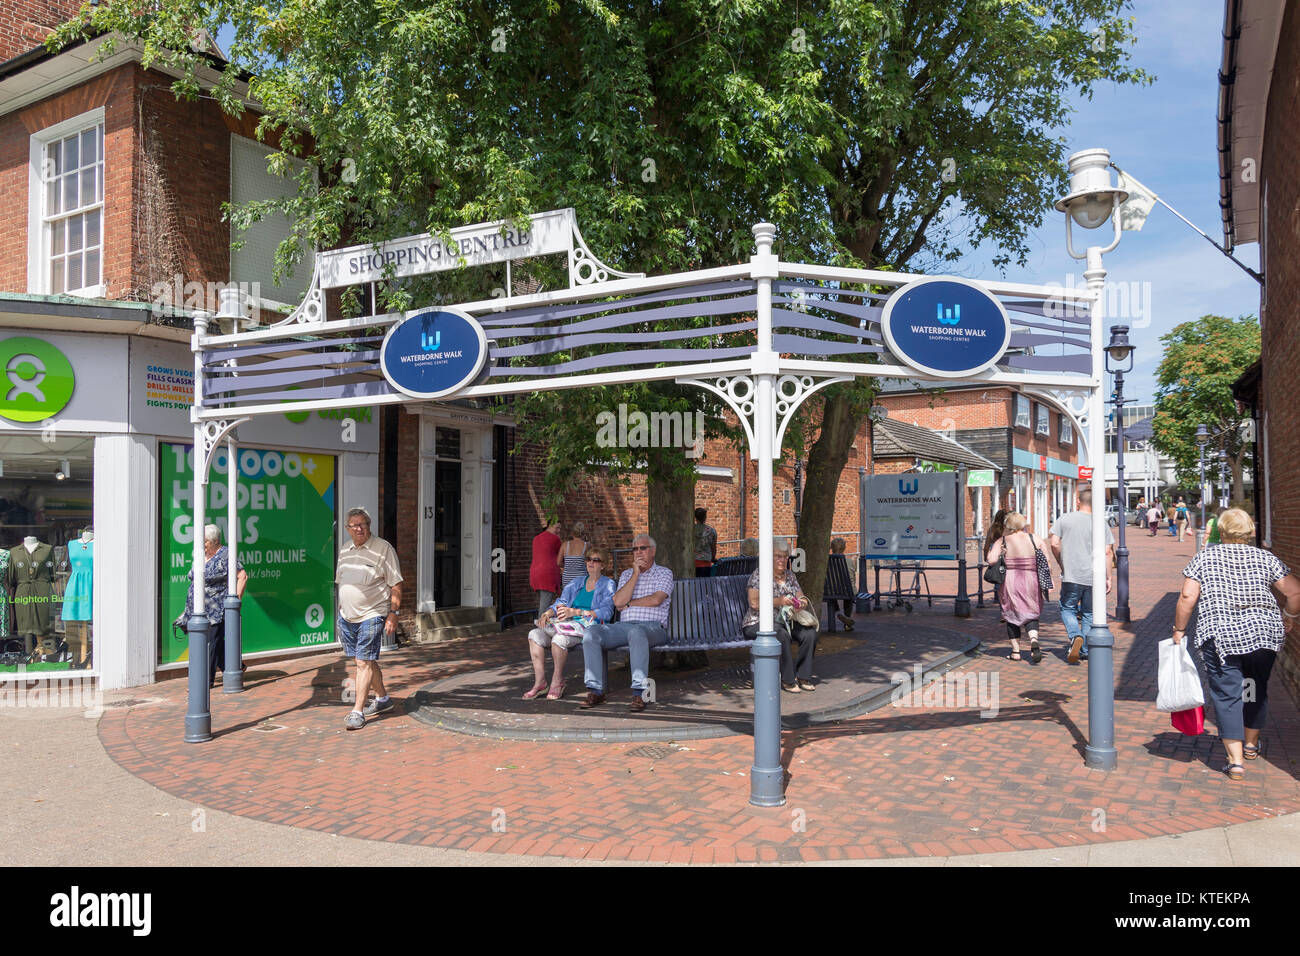 Entrance to Waterborne Walk Shopping Centre, High Street, Leighton Buzzard, Bedfordshire, England, United Kingdom - Stock Image